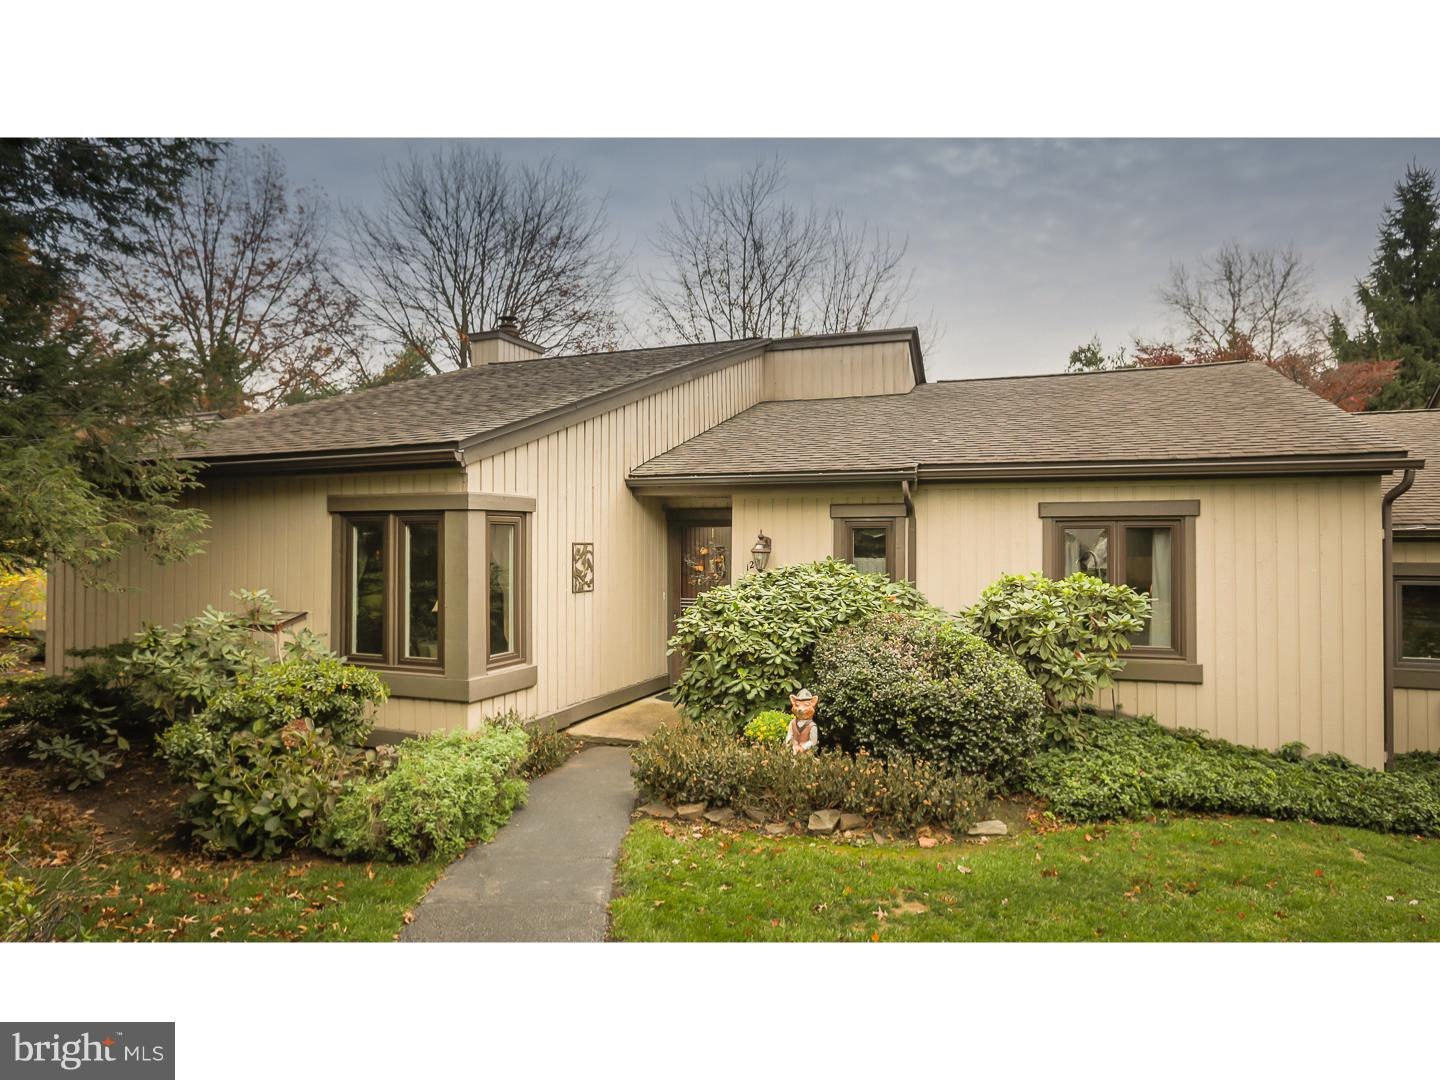 122 Chandler Drive West Chester, PA 19380